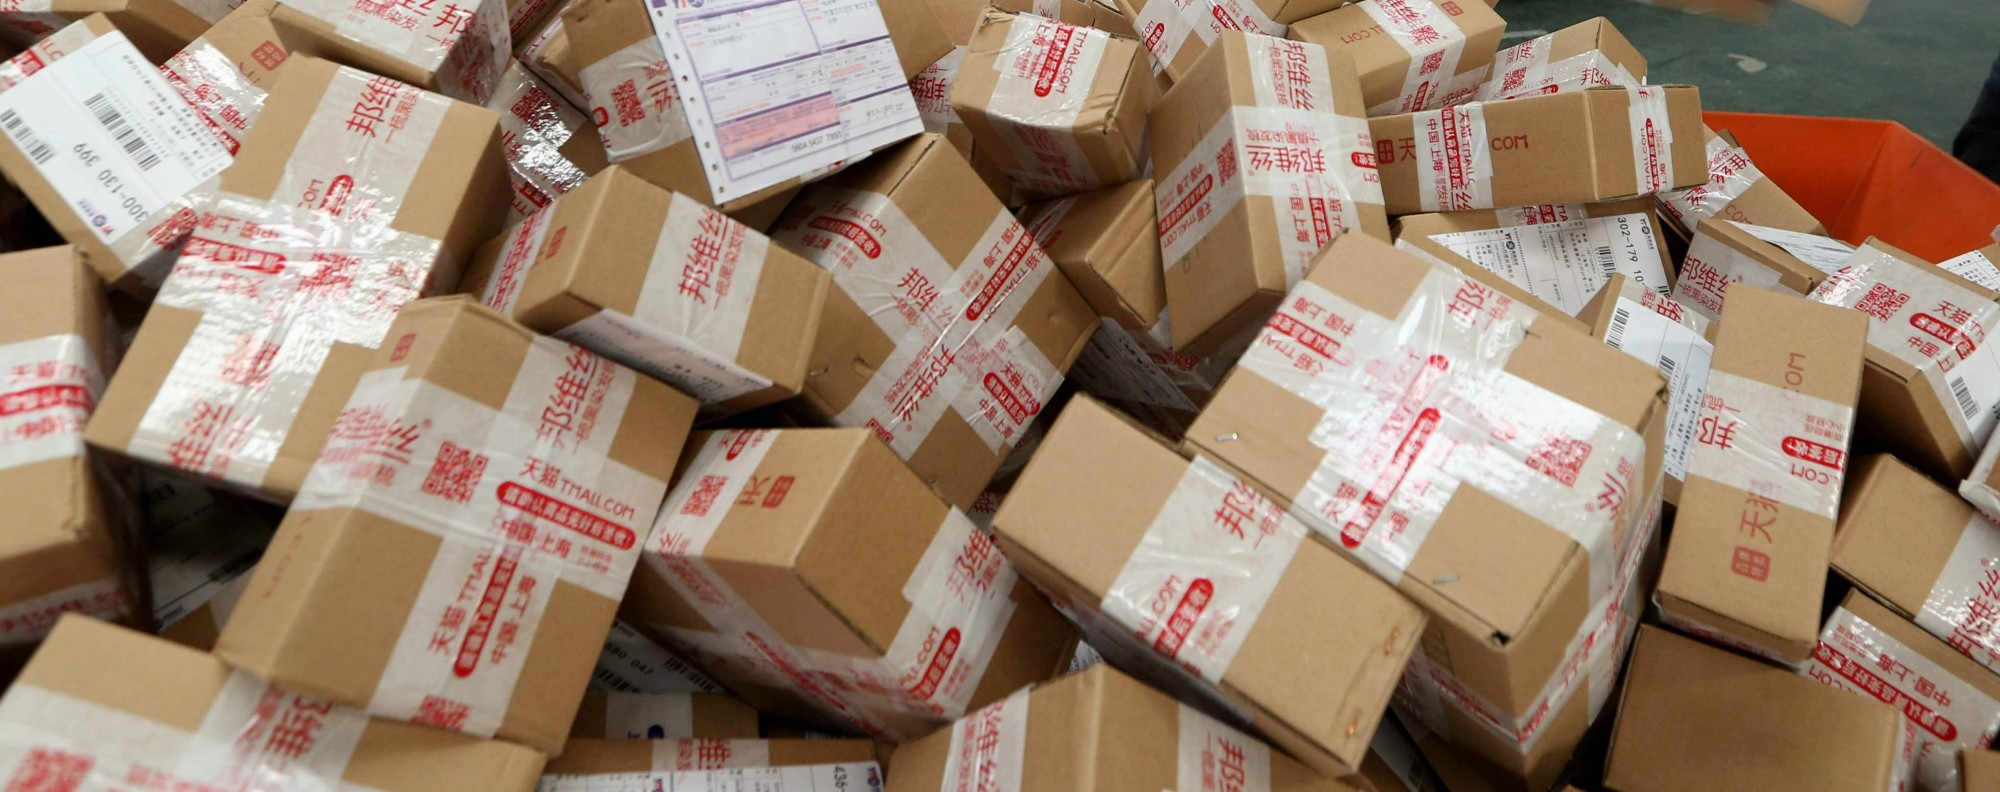 Goods packaged for delivery. Photo: AFP